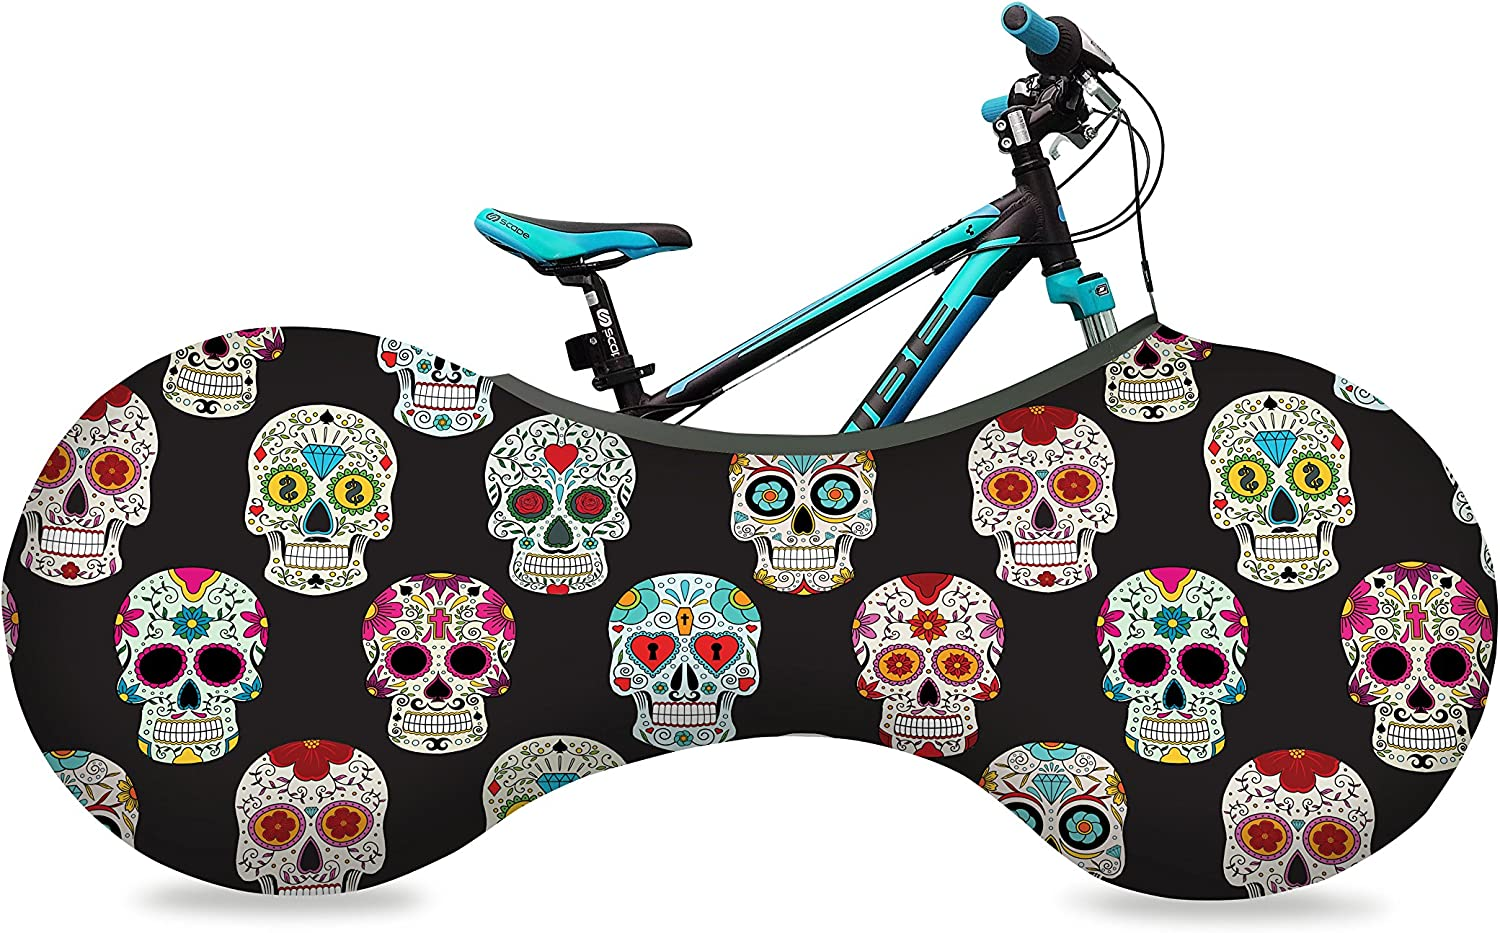 Velo Sock - All items free shipping Unisex bike cover Ronyblack skulls Phoenix Mall size one with